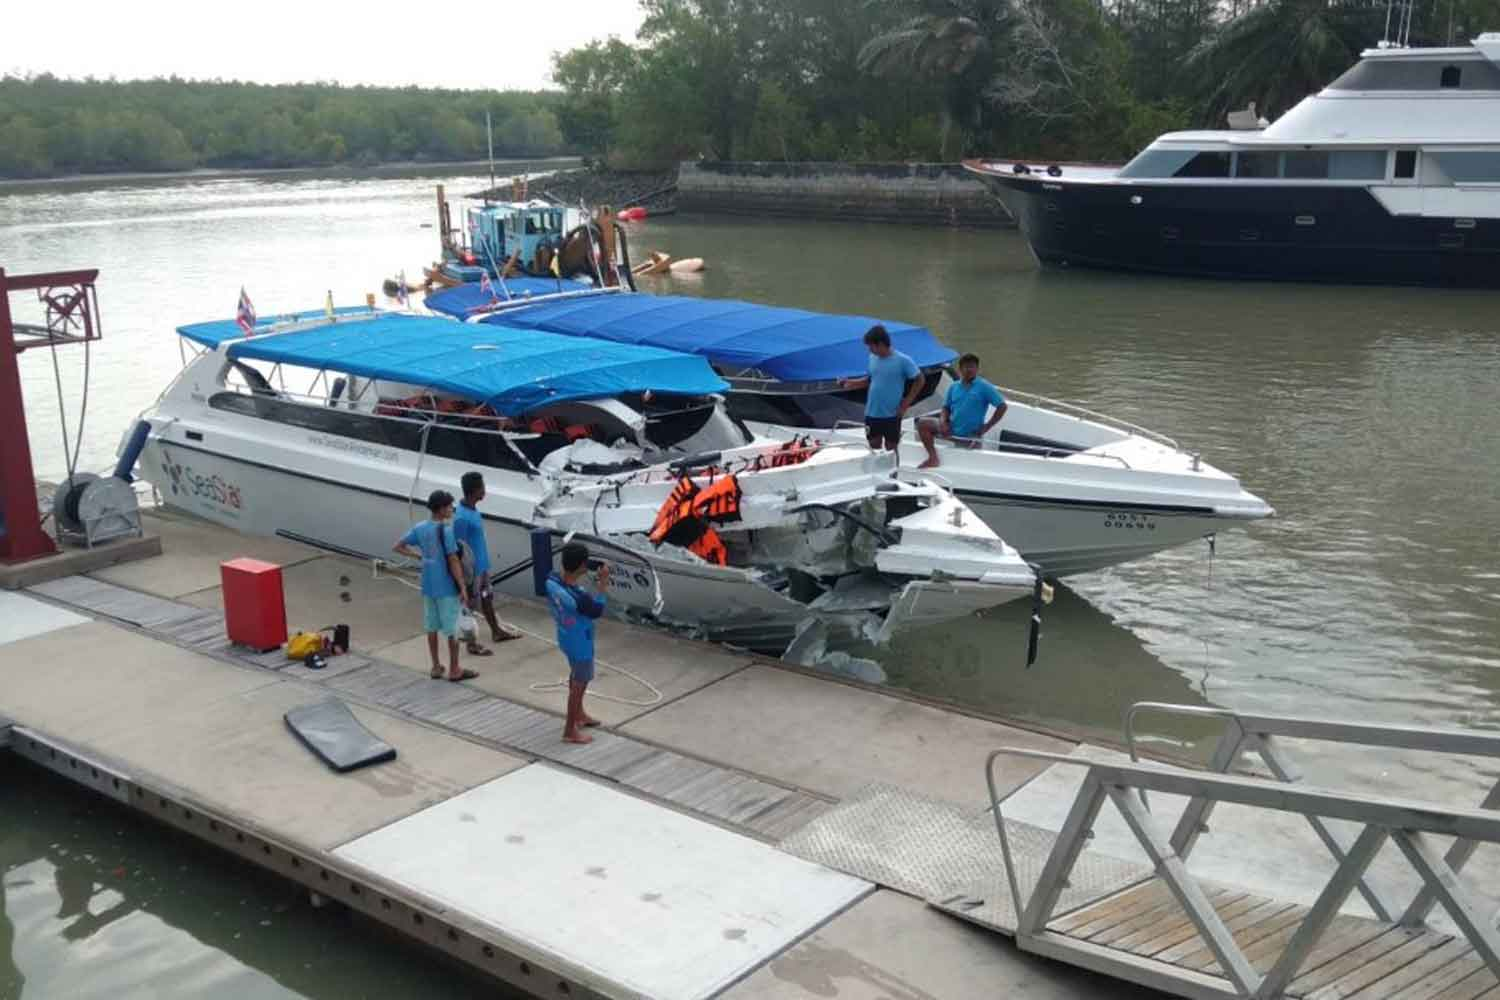 The damage to the 'Panan 5', of SeaStar Co, is evident at the dock after it collided with another boat leaving a marina in Phuket on Monday morning. (Marine police photo)